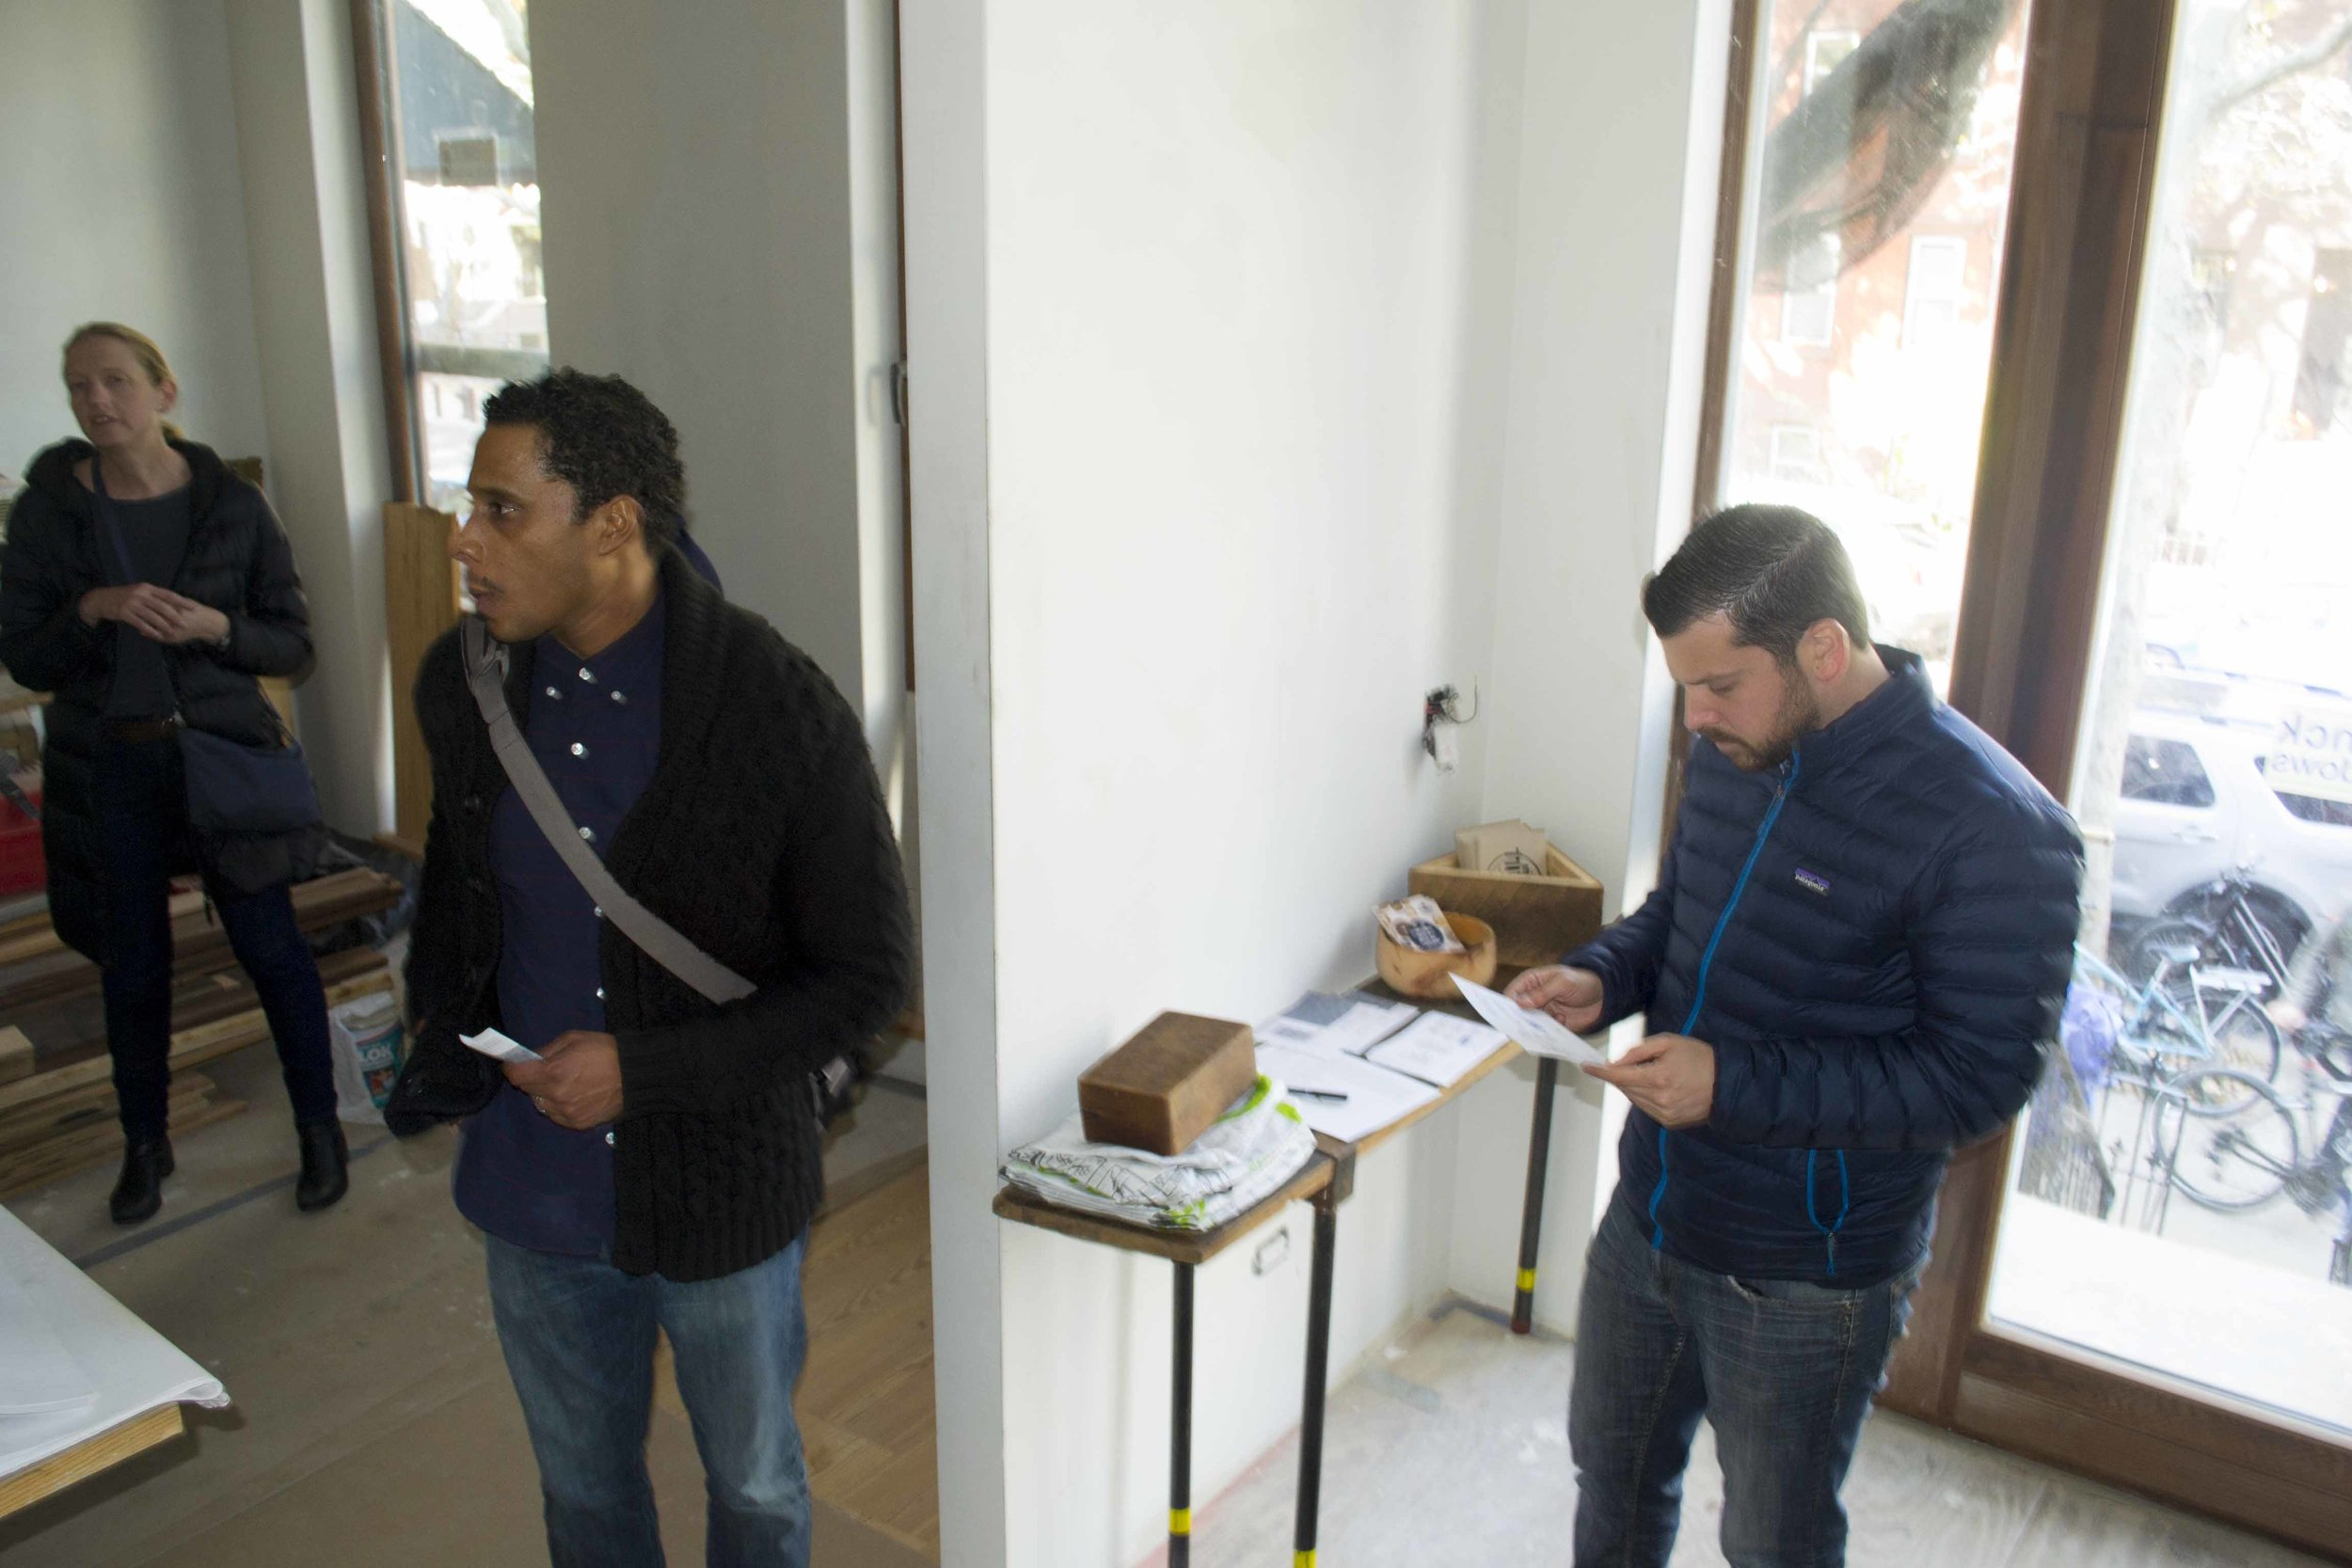 20161111__NY PASSIVE HOUSE DAYS_OPEN HOUSE_PAUL CASTRUCCI ARCHITECT__0007_lowres.jpg